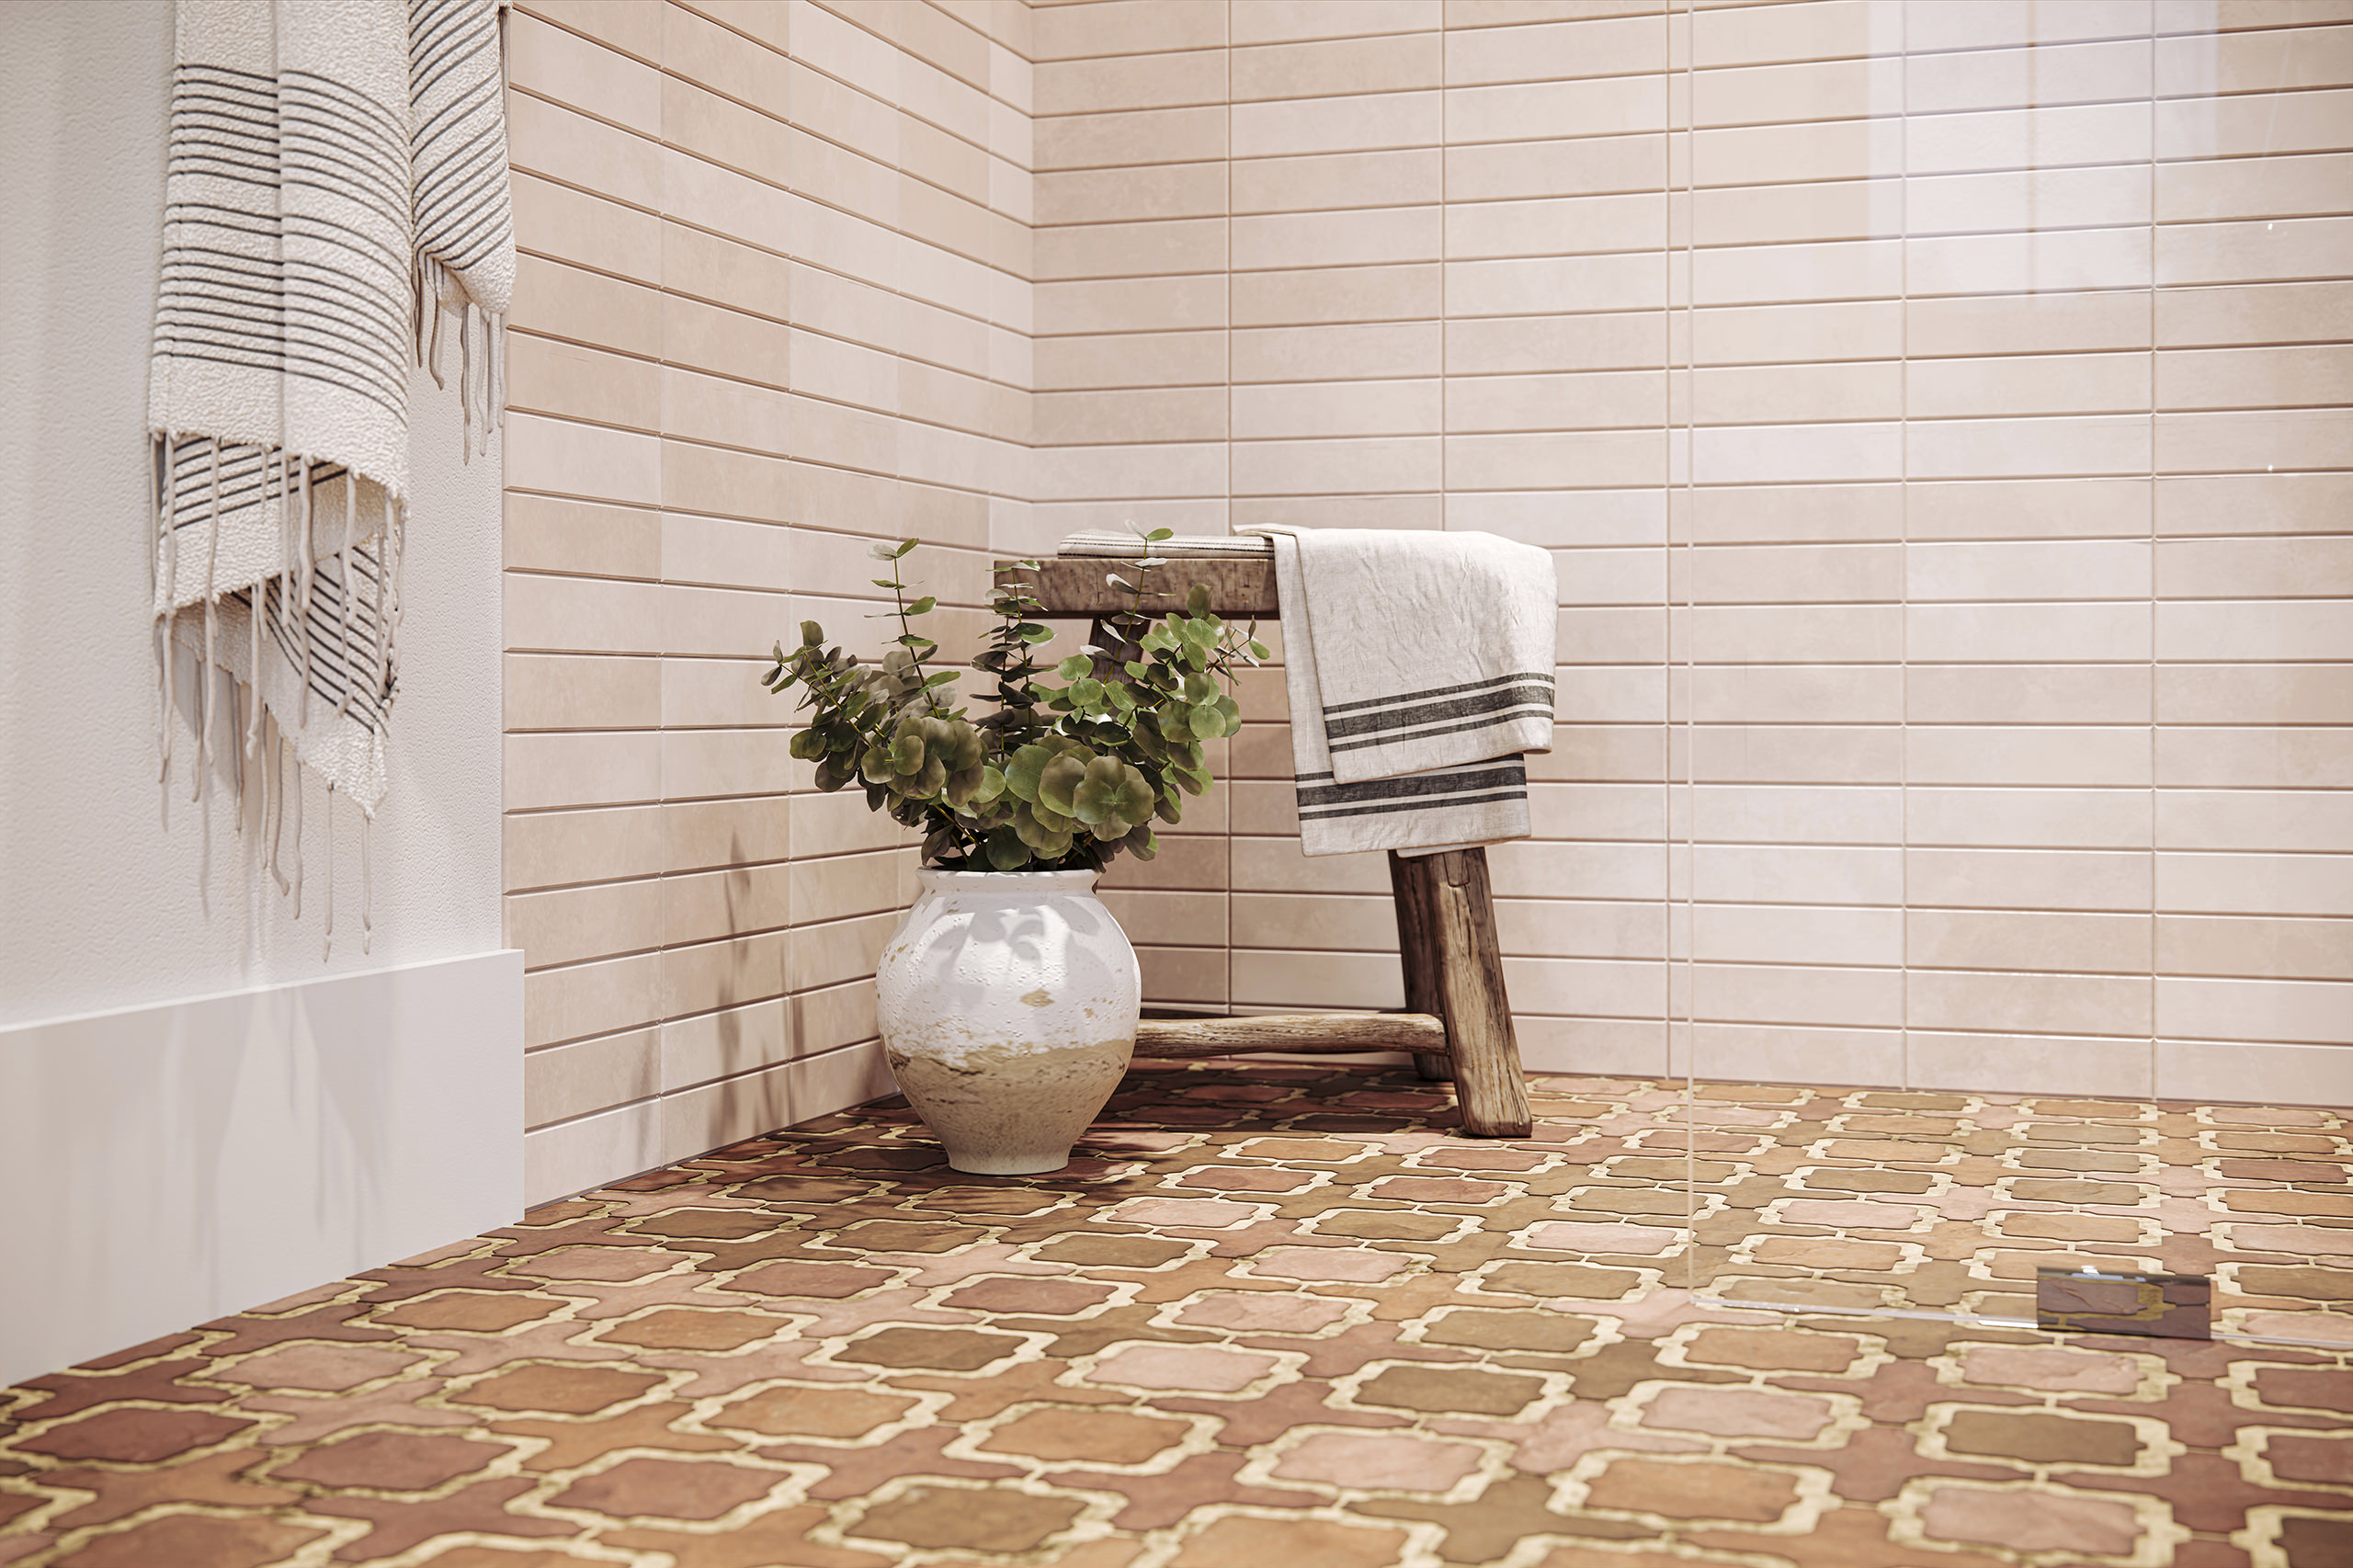 3D vignette of a potted plant and a low stool with a towel standing on a shower floor